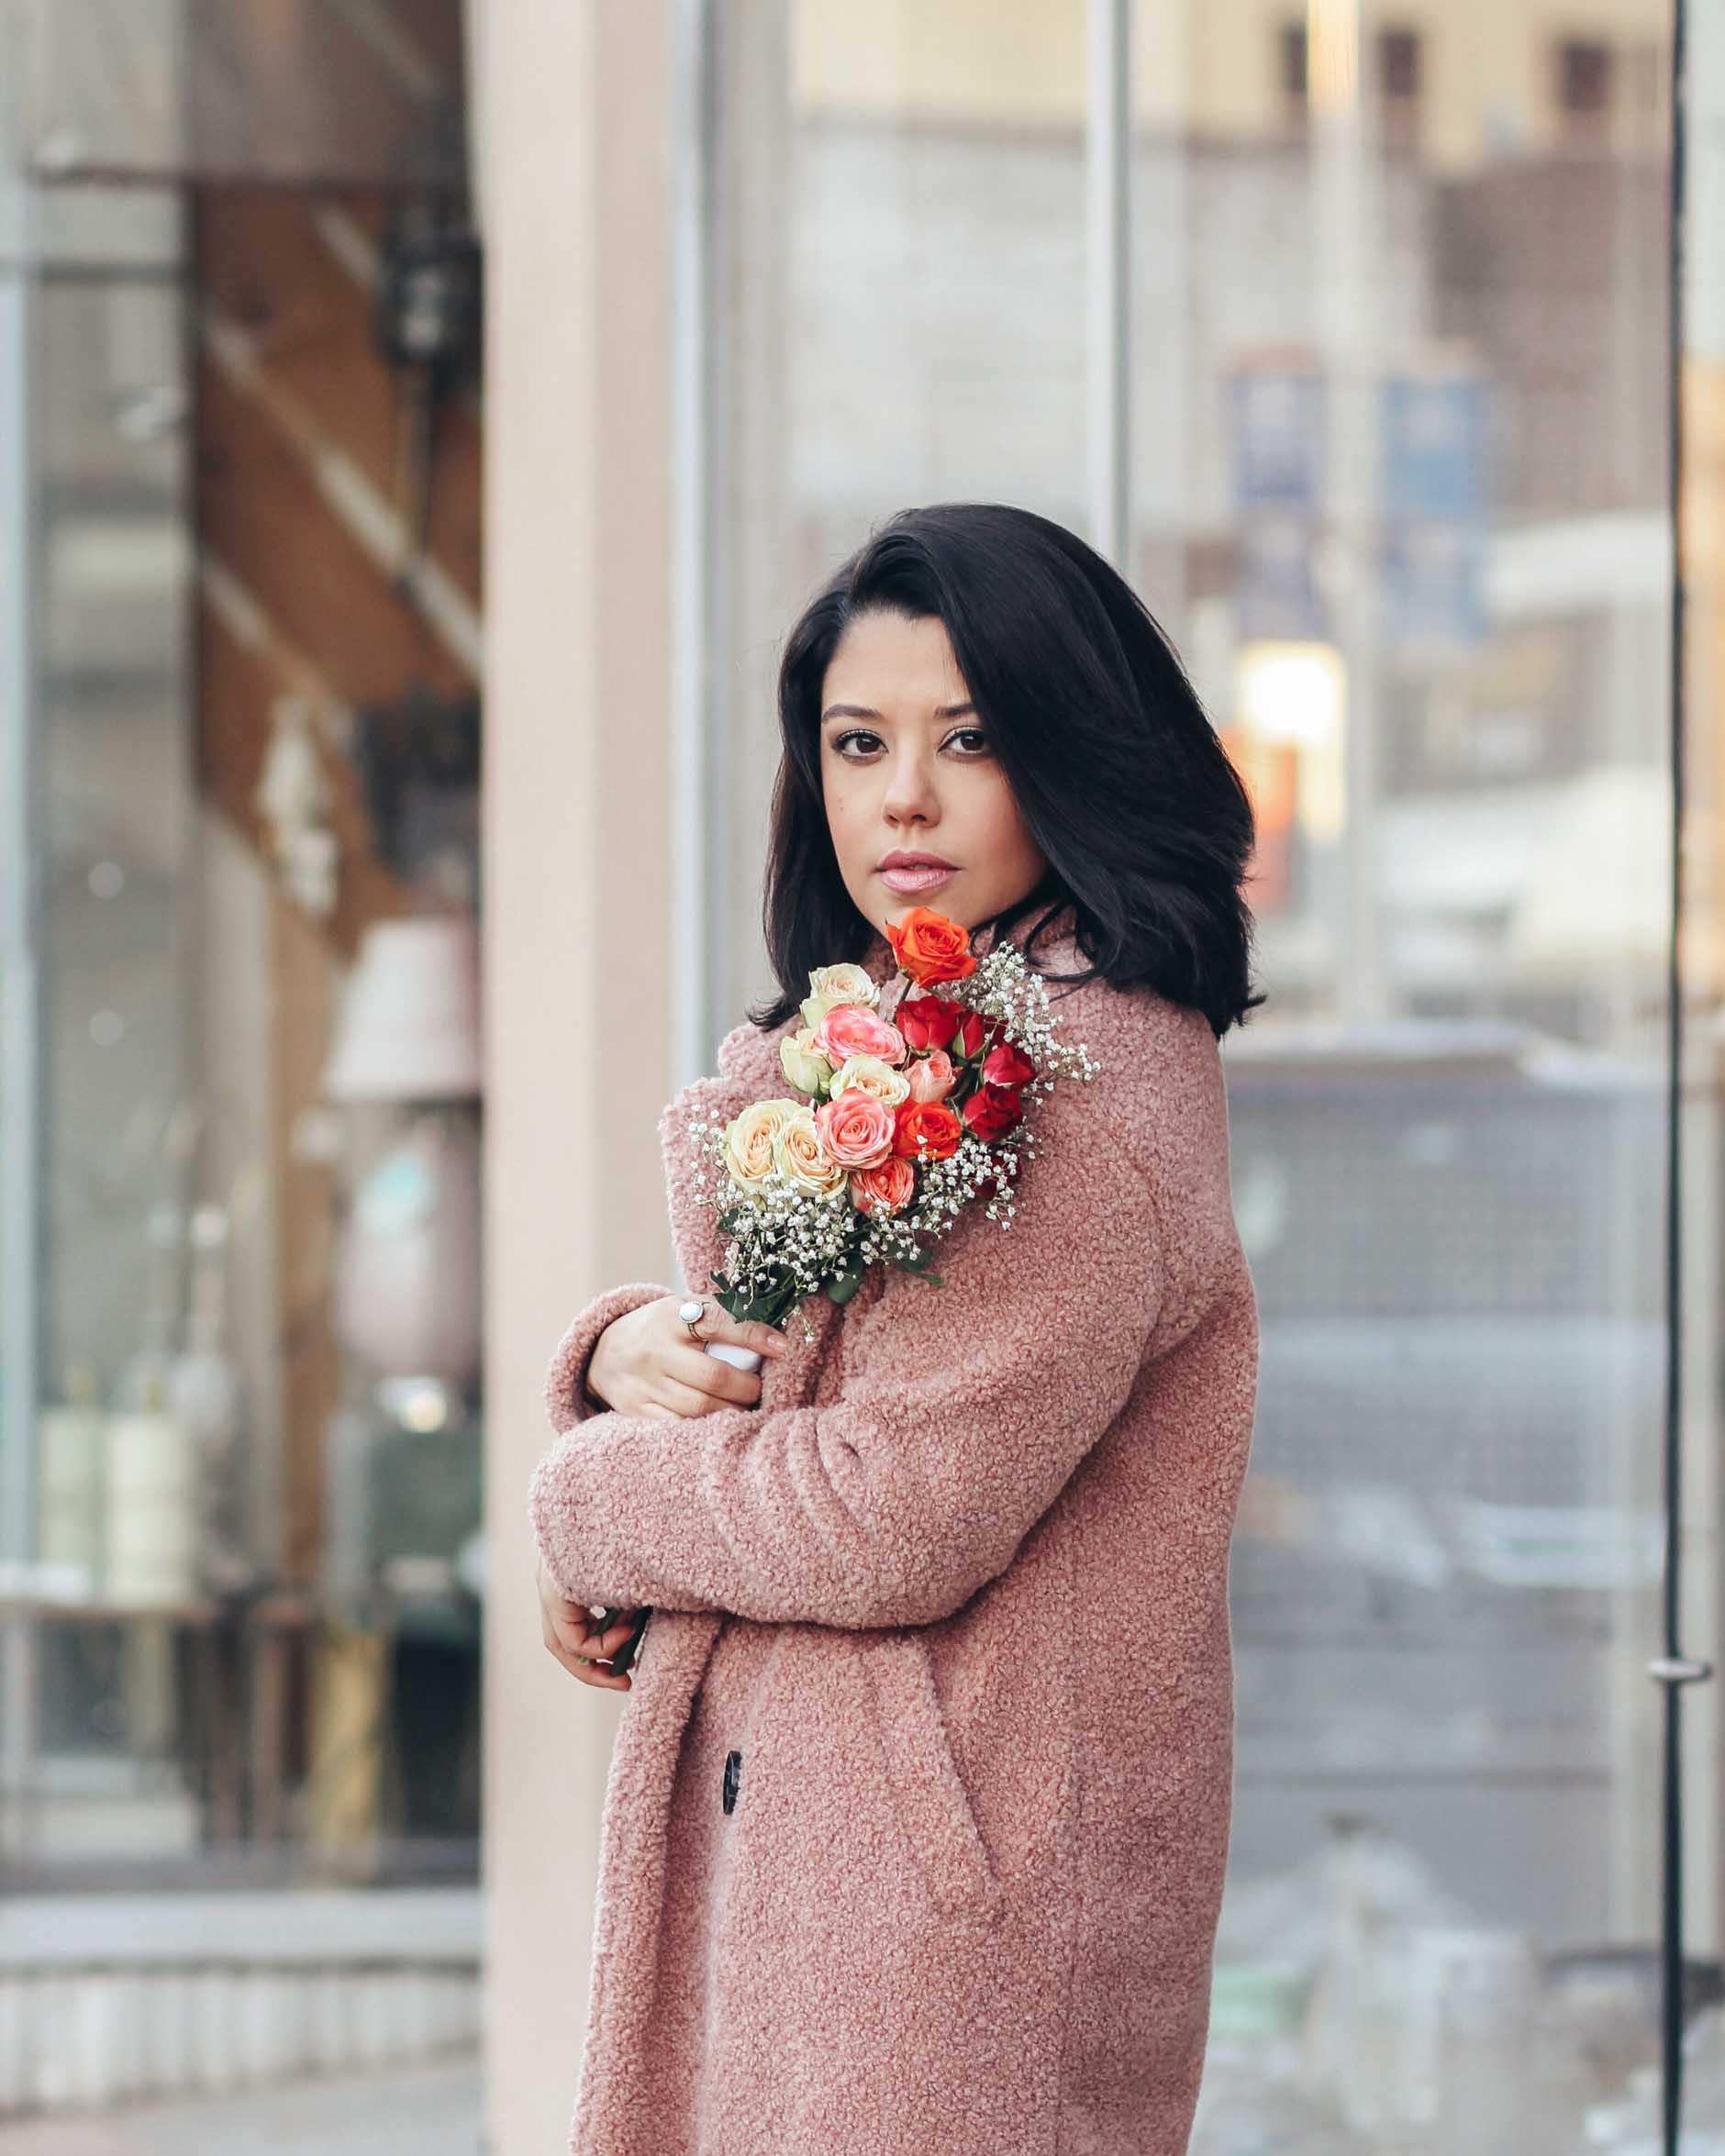 lifestyle blogger naty michele wearing a teddy coat and holding roses